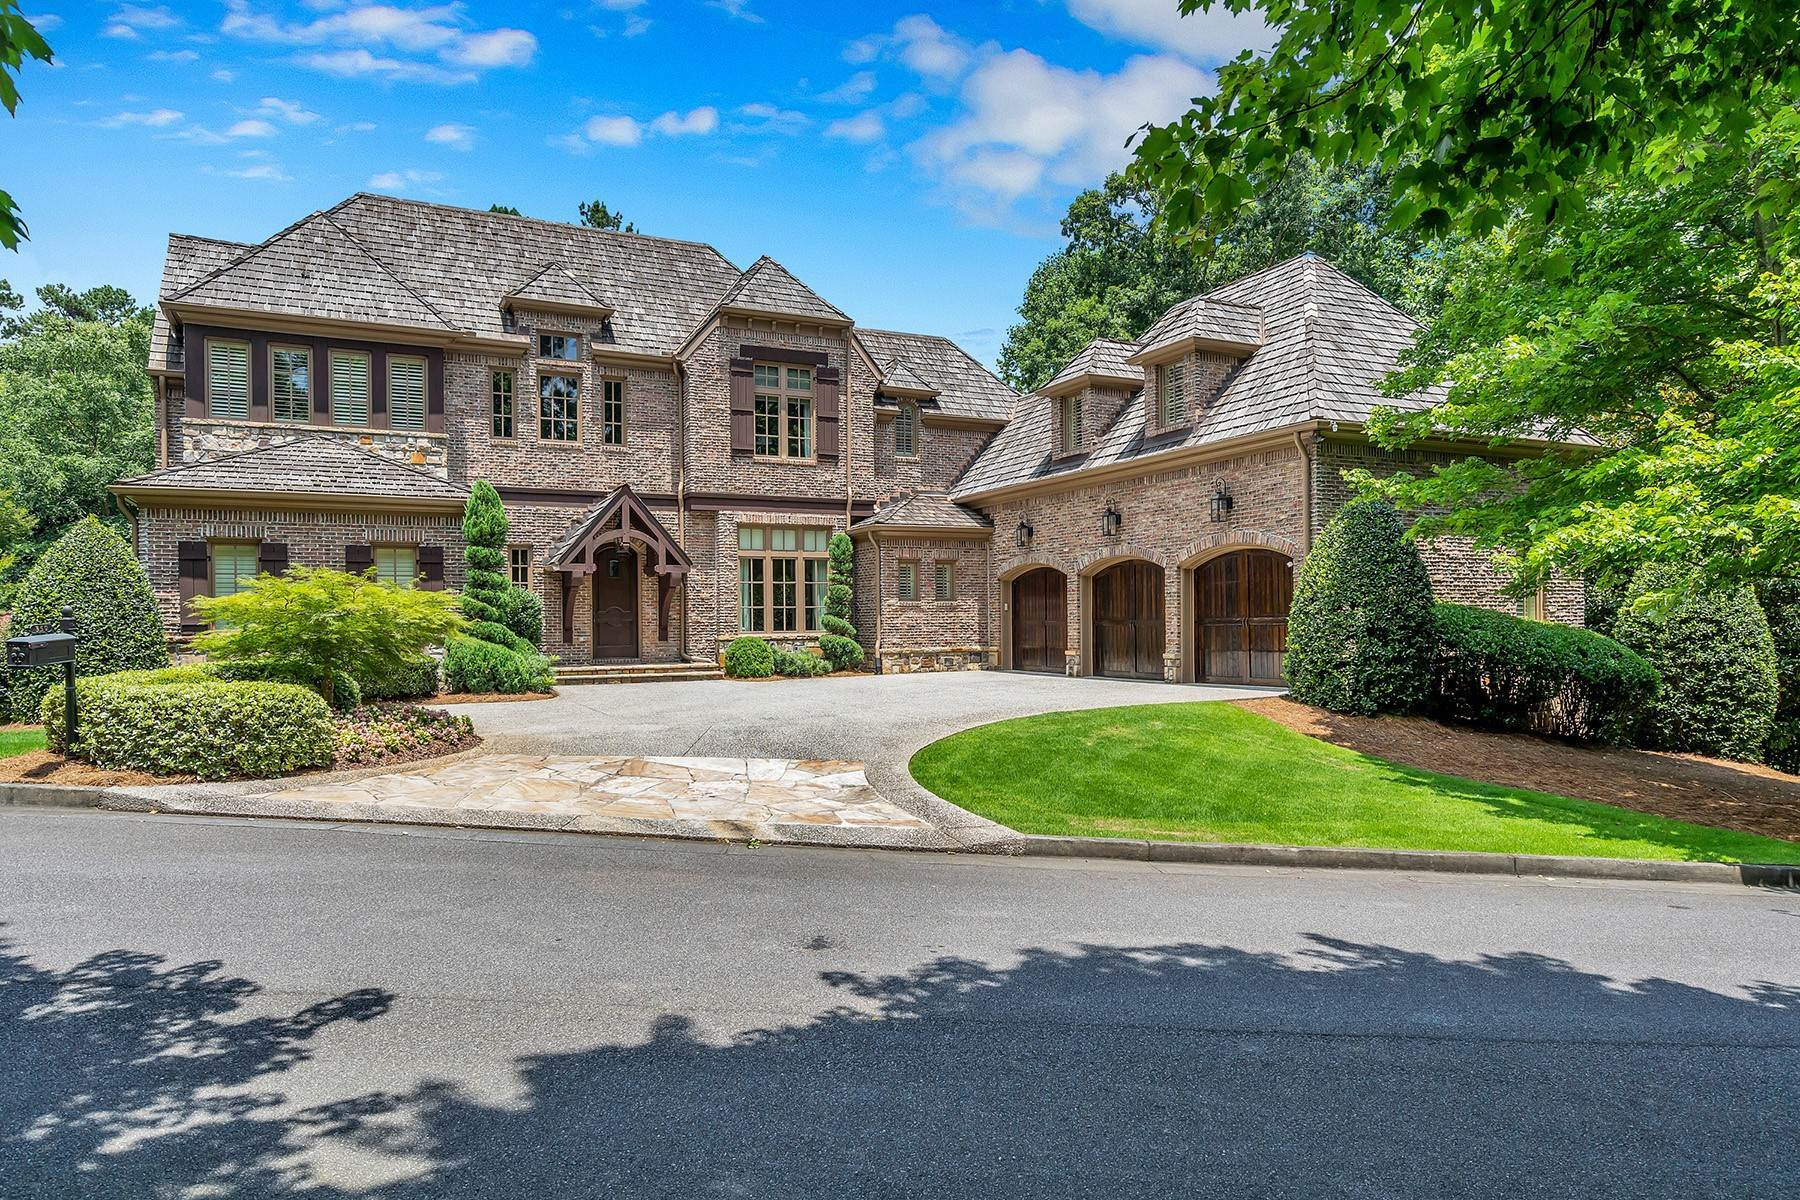 Single Family Homes for Sale at Your Private Sanctuary Awaits in Sought-After and Gated Community Citadella 350 Citadella Court Alpharetta, Georgia 30022 United States